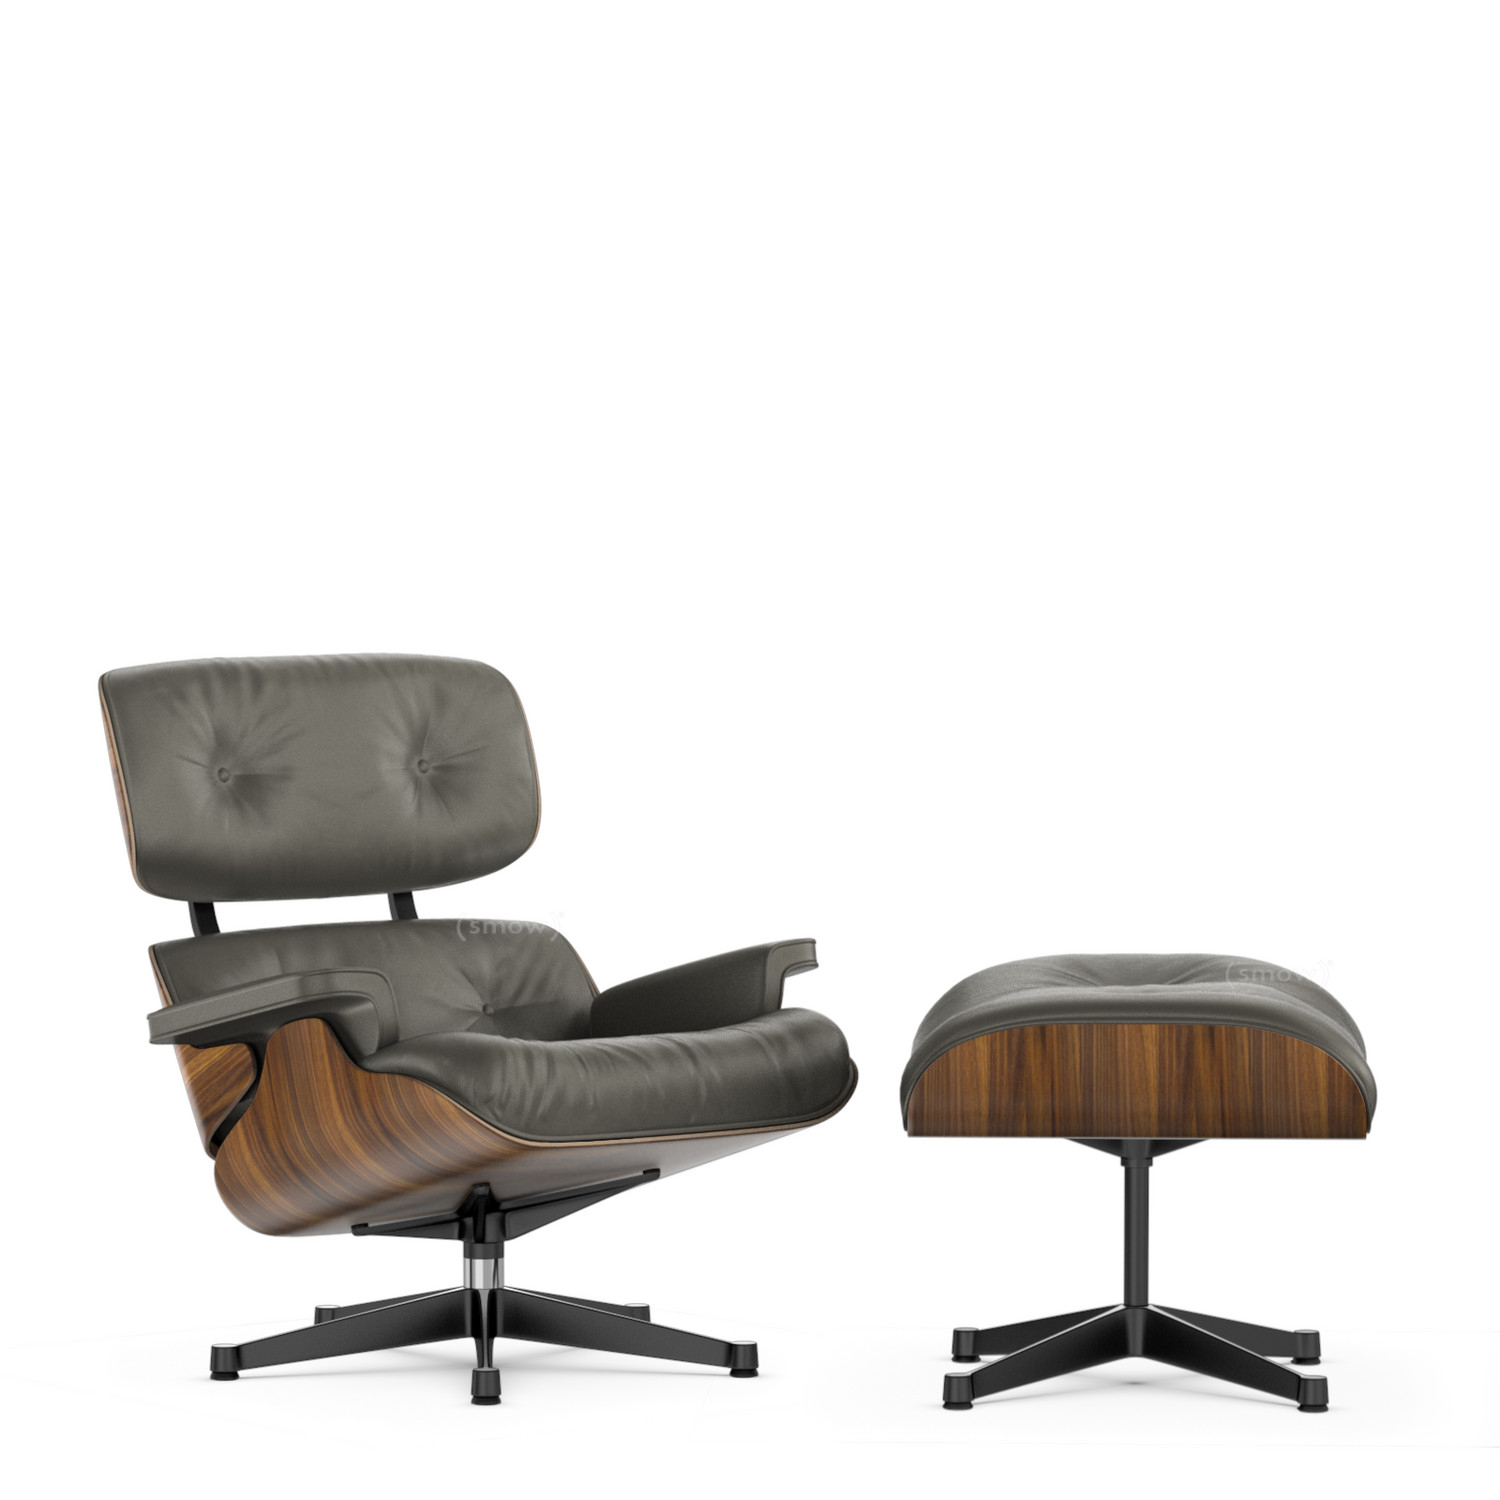 Vitra lounge chair ottoman beauty versions by charles for Design eames